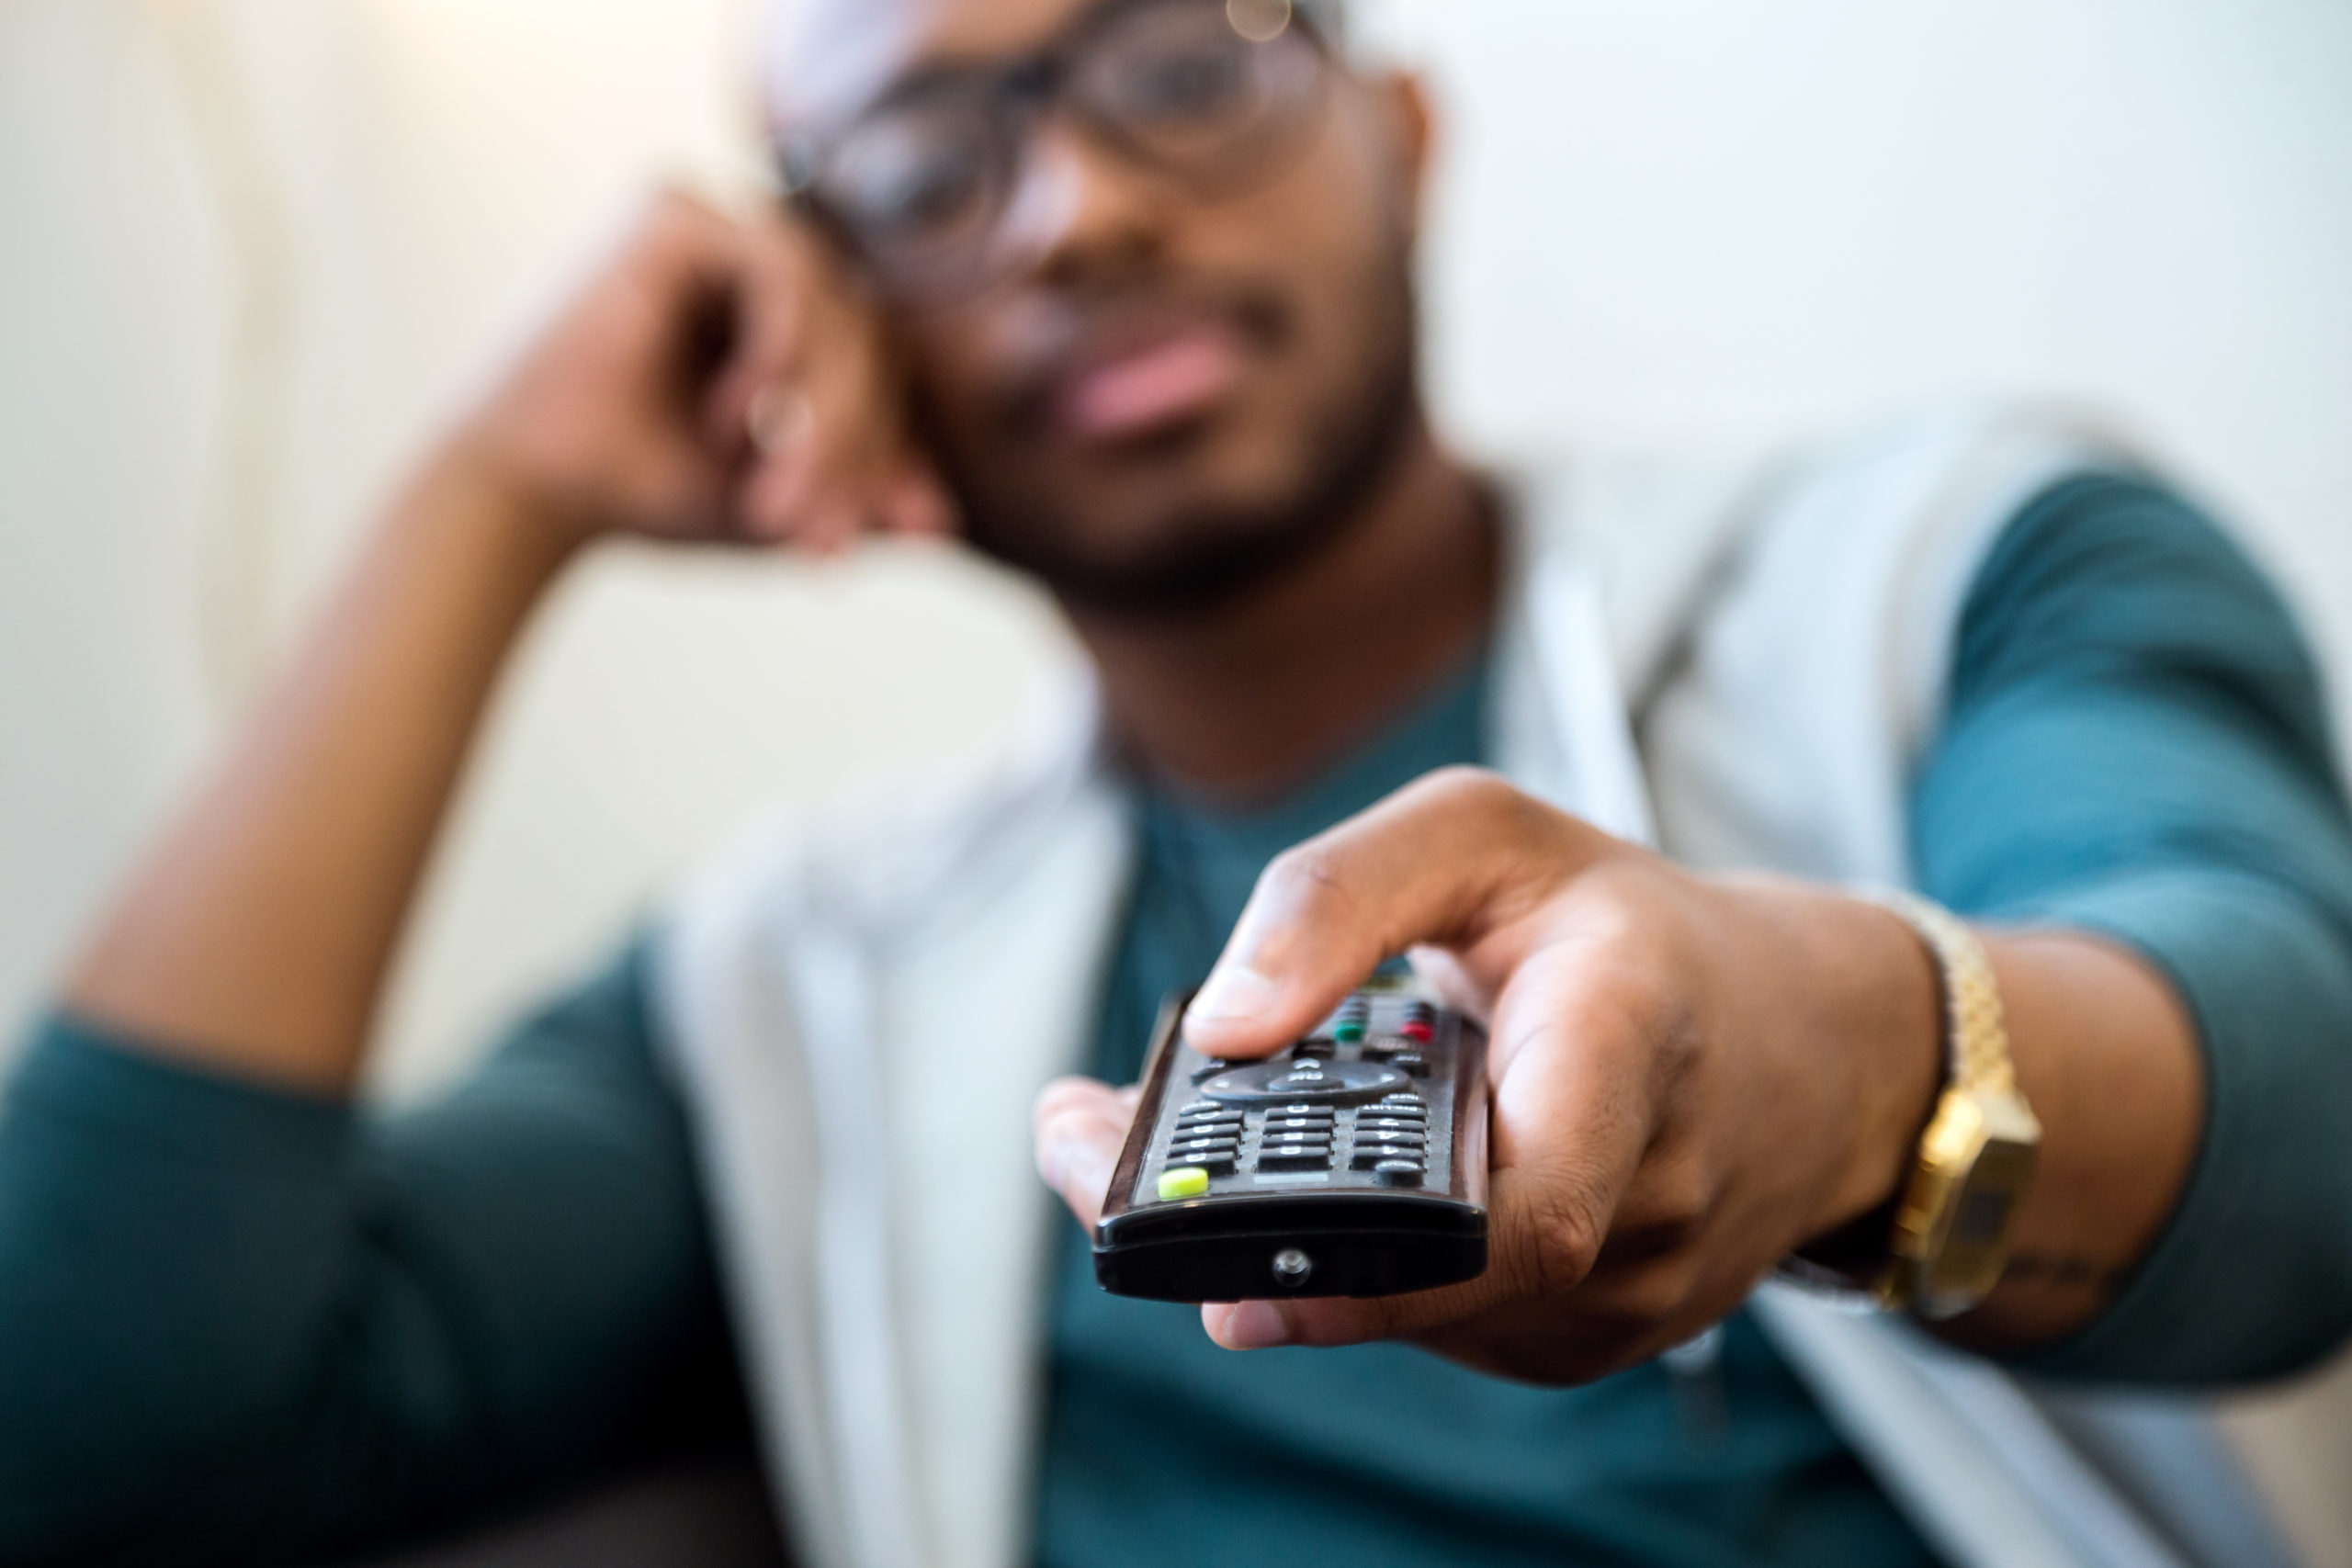 https://elements.envato.com/handsome-young-black-man-watching-tv-at-home-WBR2Y5S